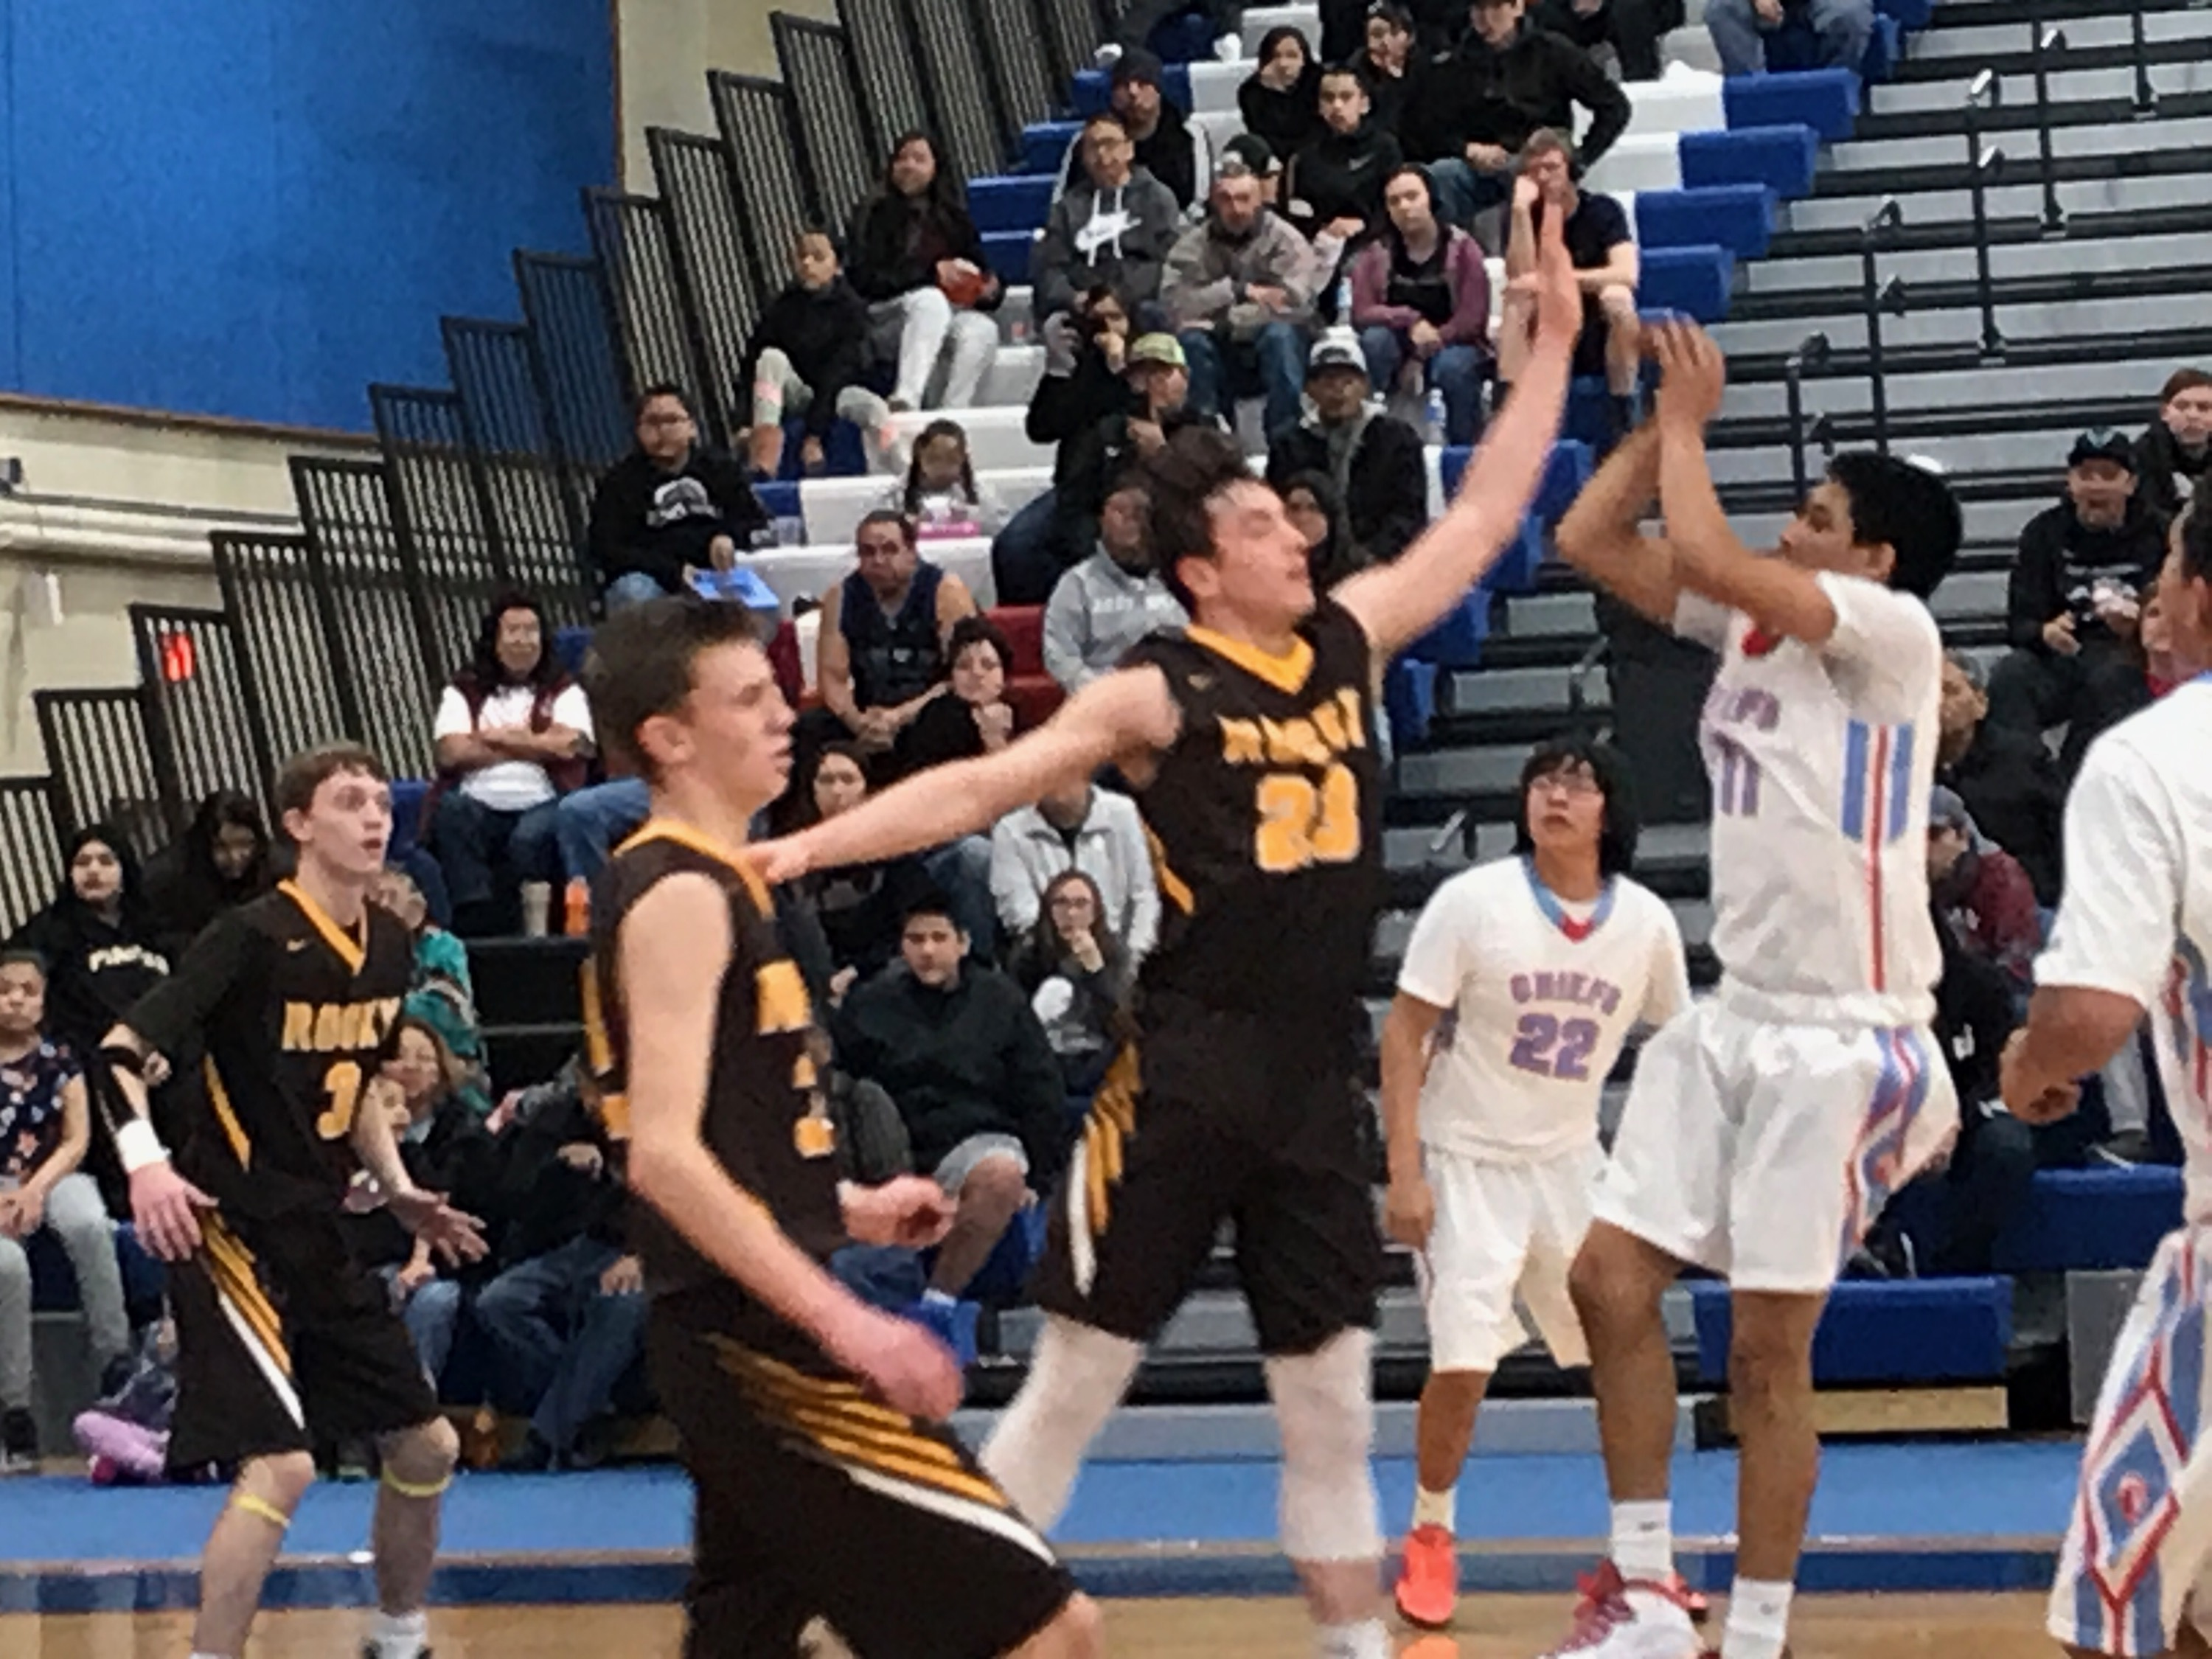 Chiefs Rock Rocky; Tigers, Cougars, Wranglers win two